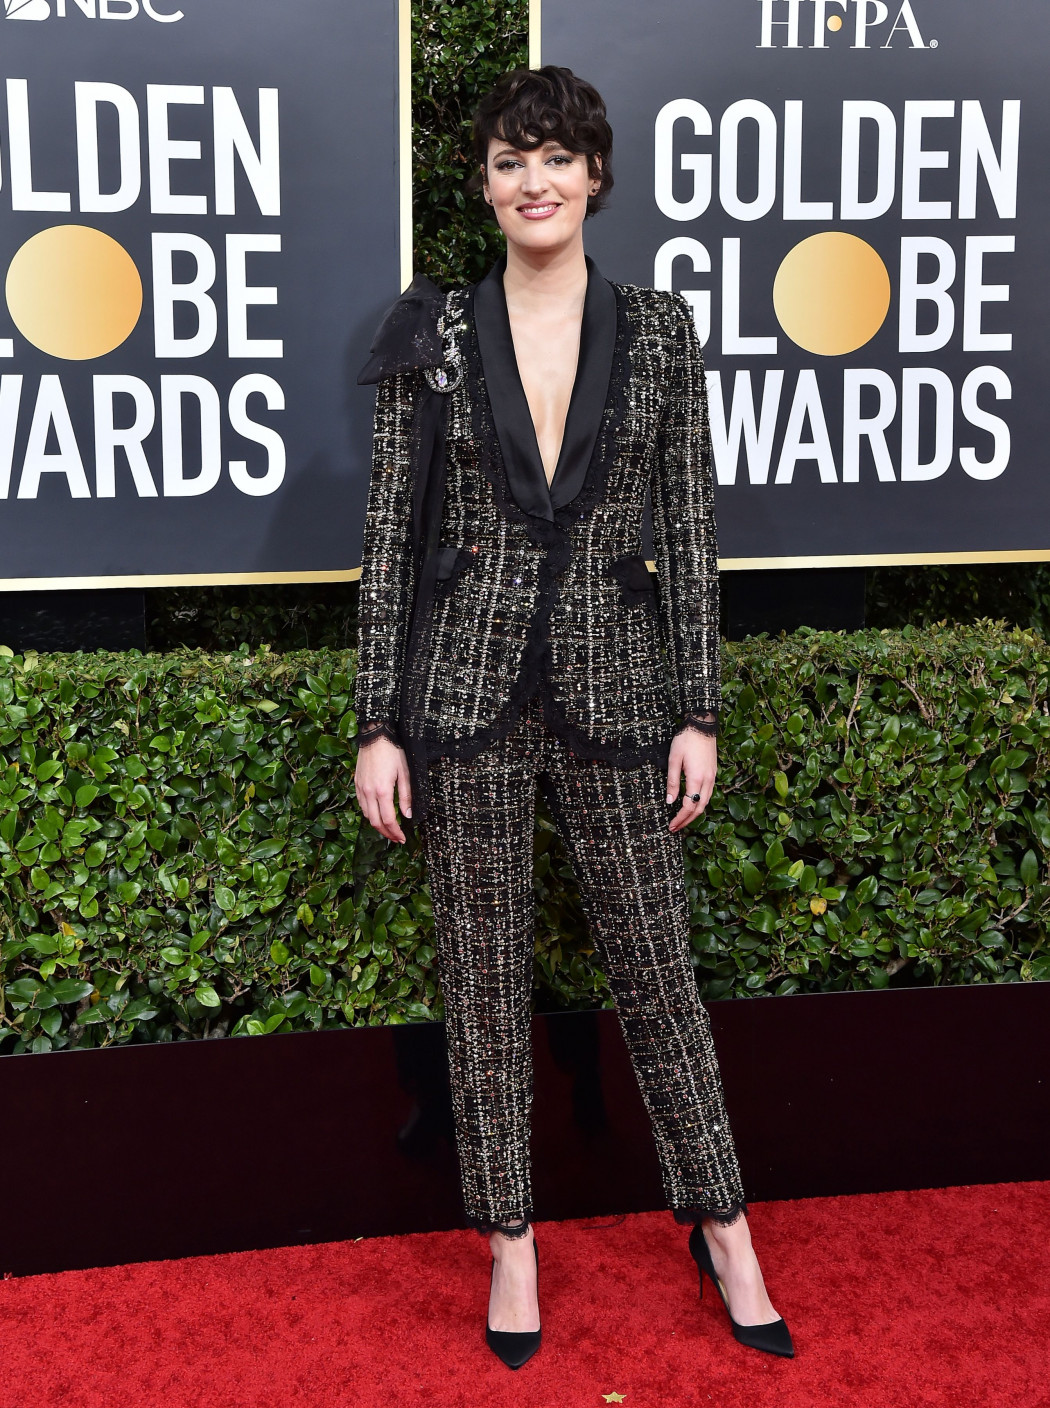 Golden Globes 2020 : les plus beaux looks du tapis rouge - 13